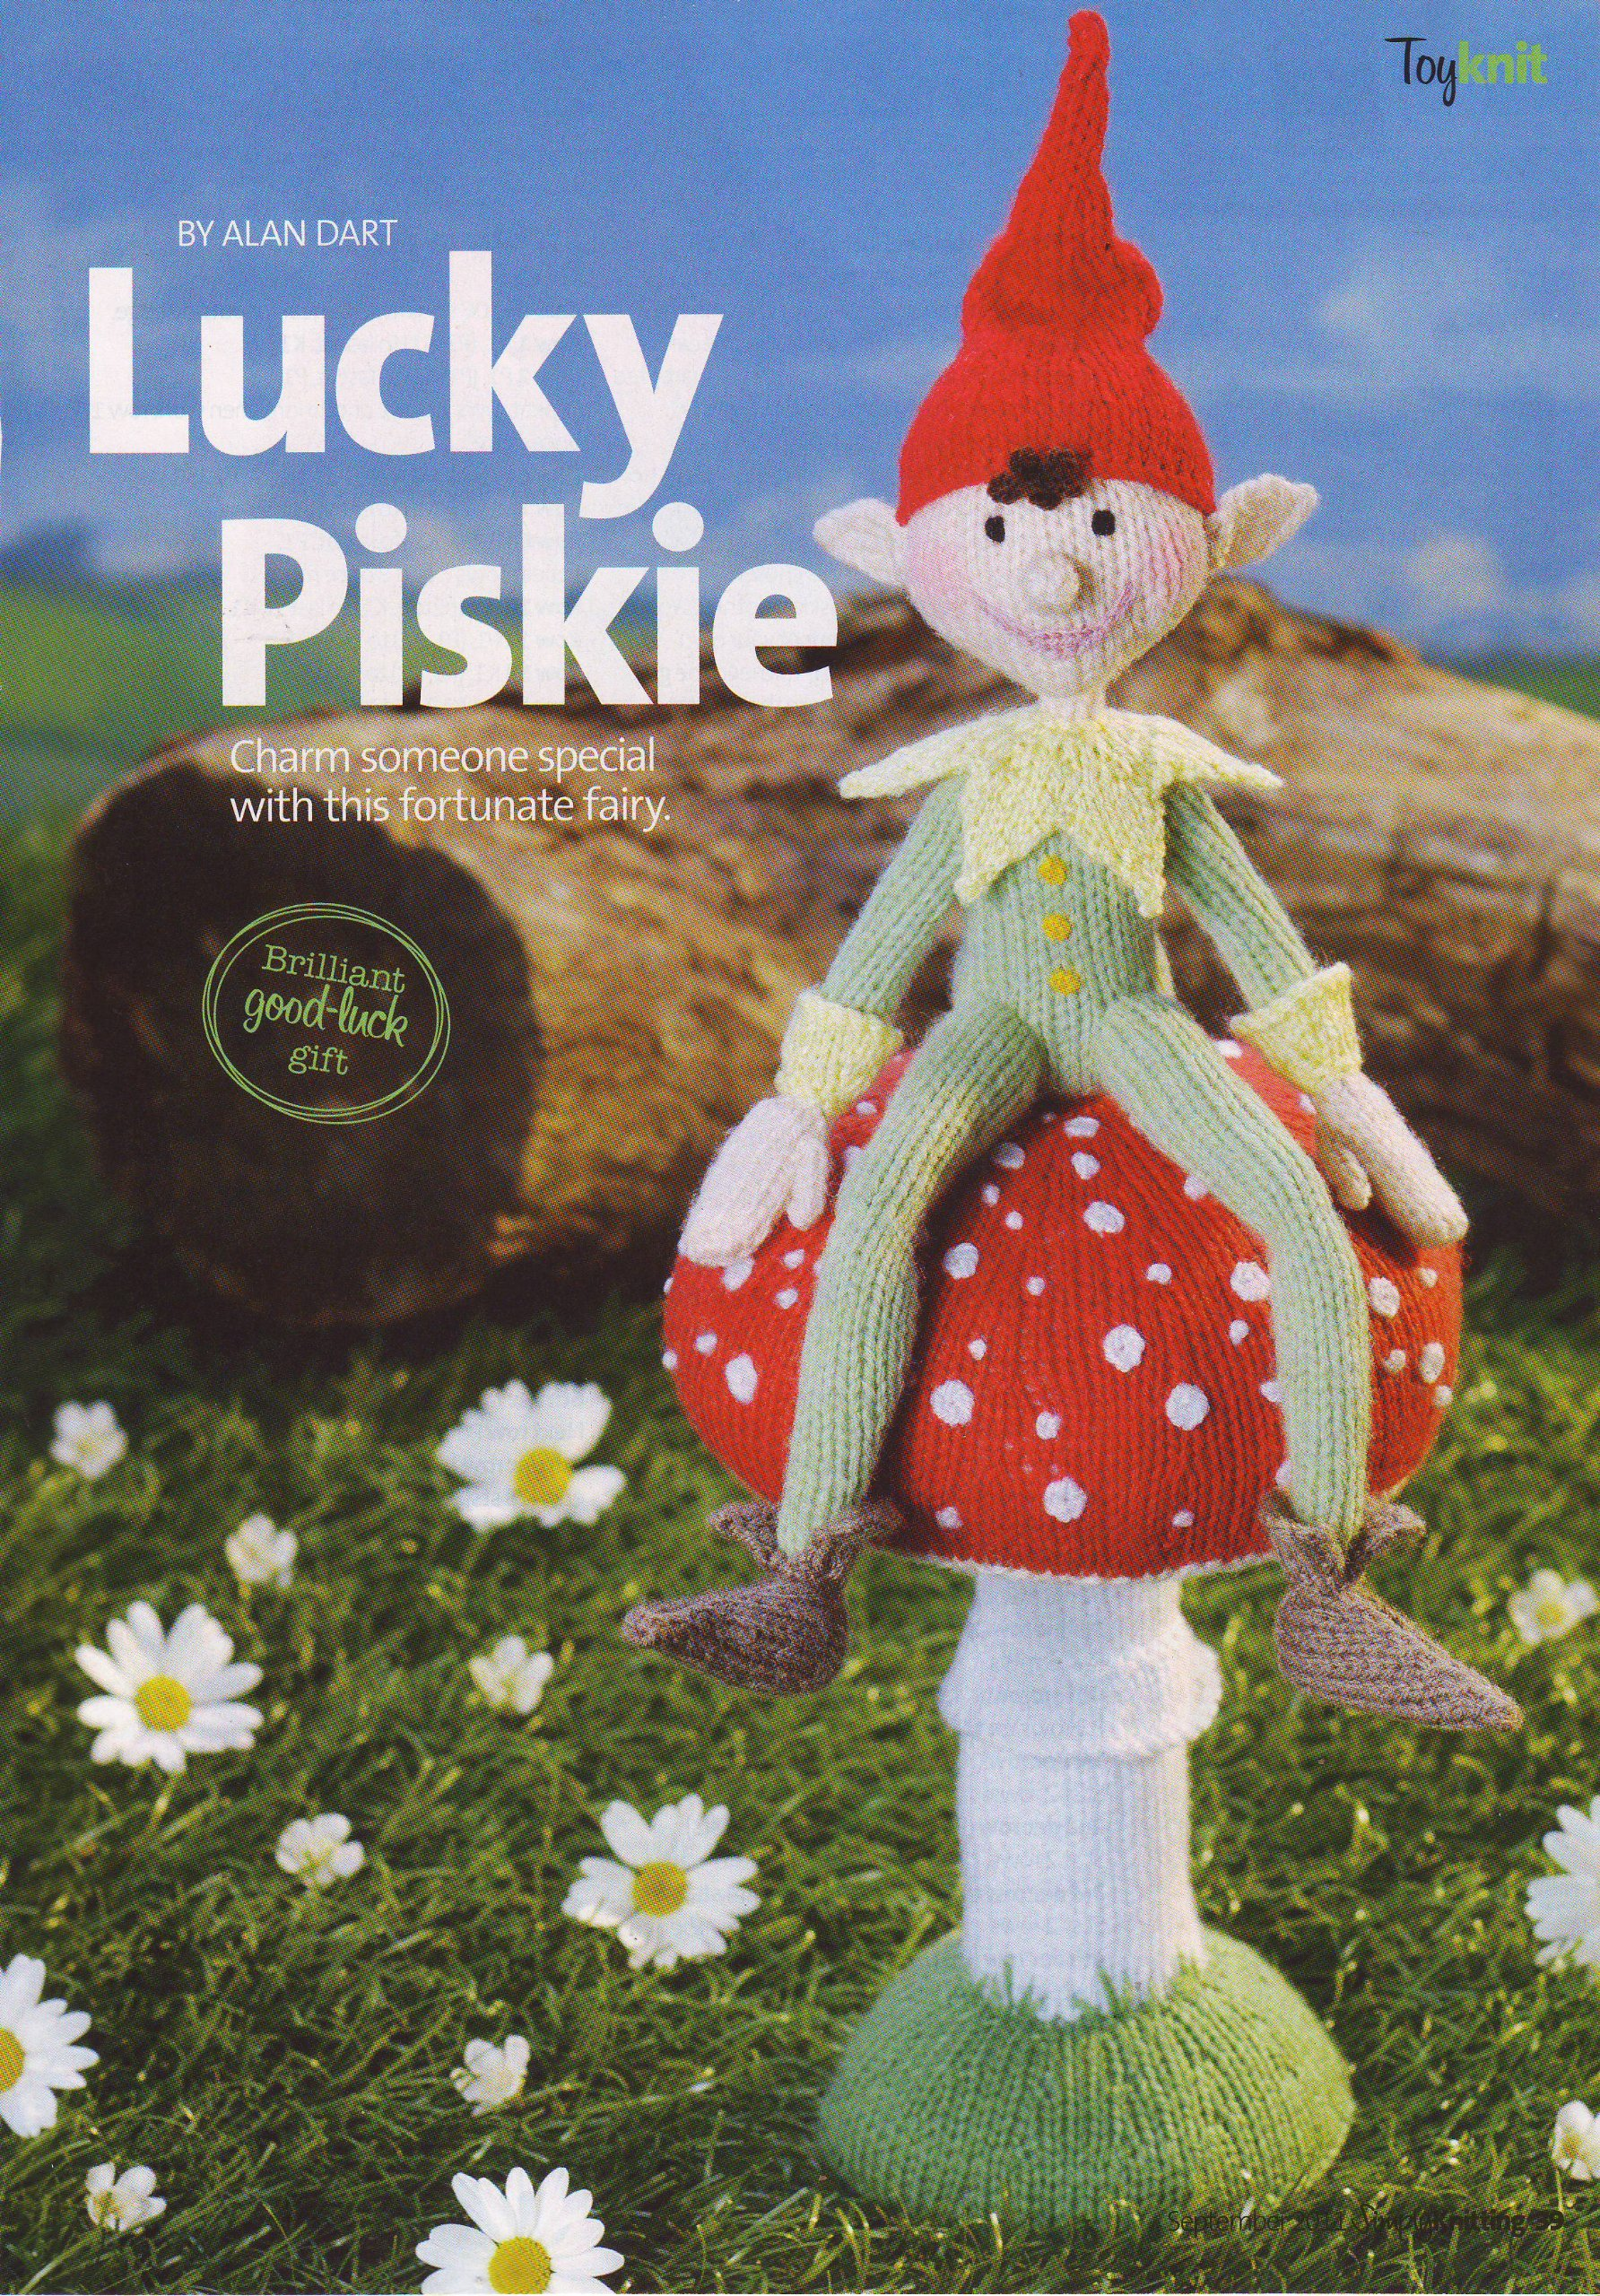 Lucky Piskie Toy Cornish Fairy Pixie Knitting Pattern  Measurements The  Toadstool 23cm tall The Piskie 25cm tall (Simply Knitting Magazine Pull Out  Pattern) ... 06d995d8859